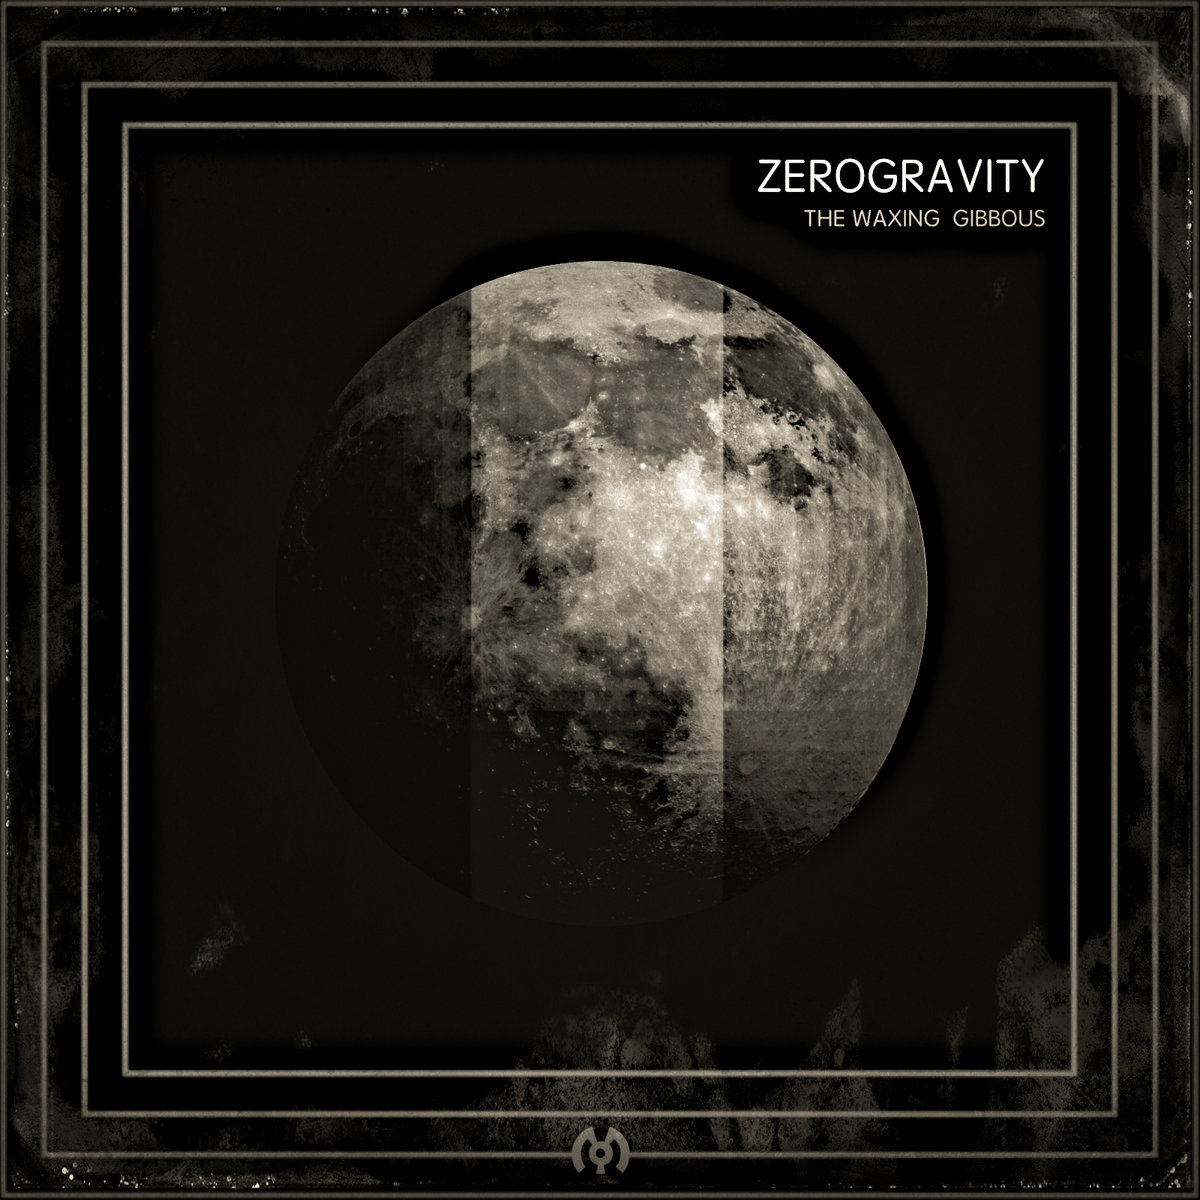 ZEROGRAVITY - The Waxing Gibbous @ 'The Waxing Gibbous' album (electronic, dubstep)